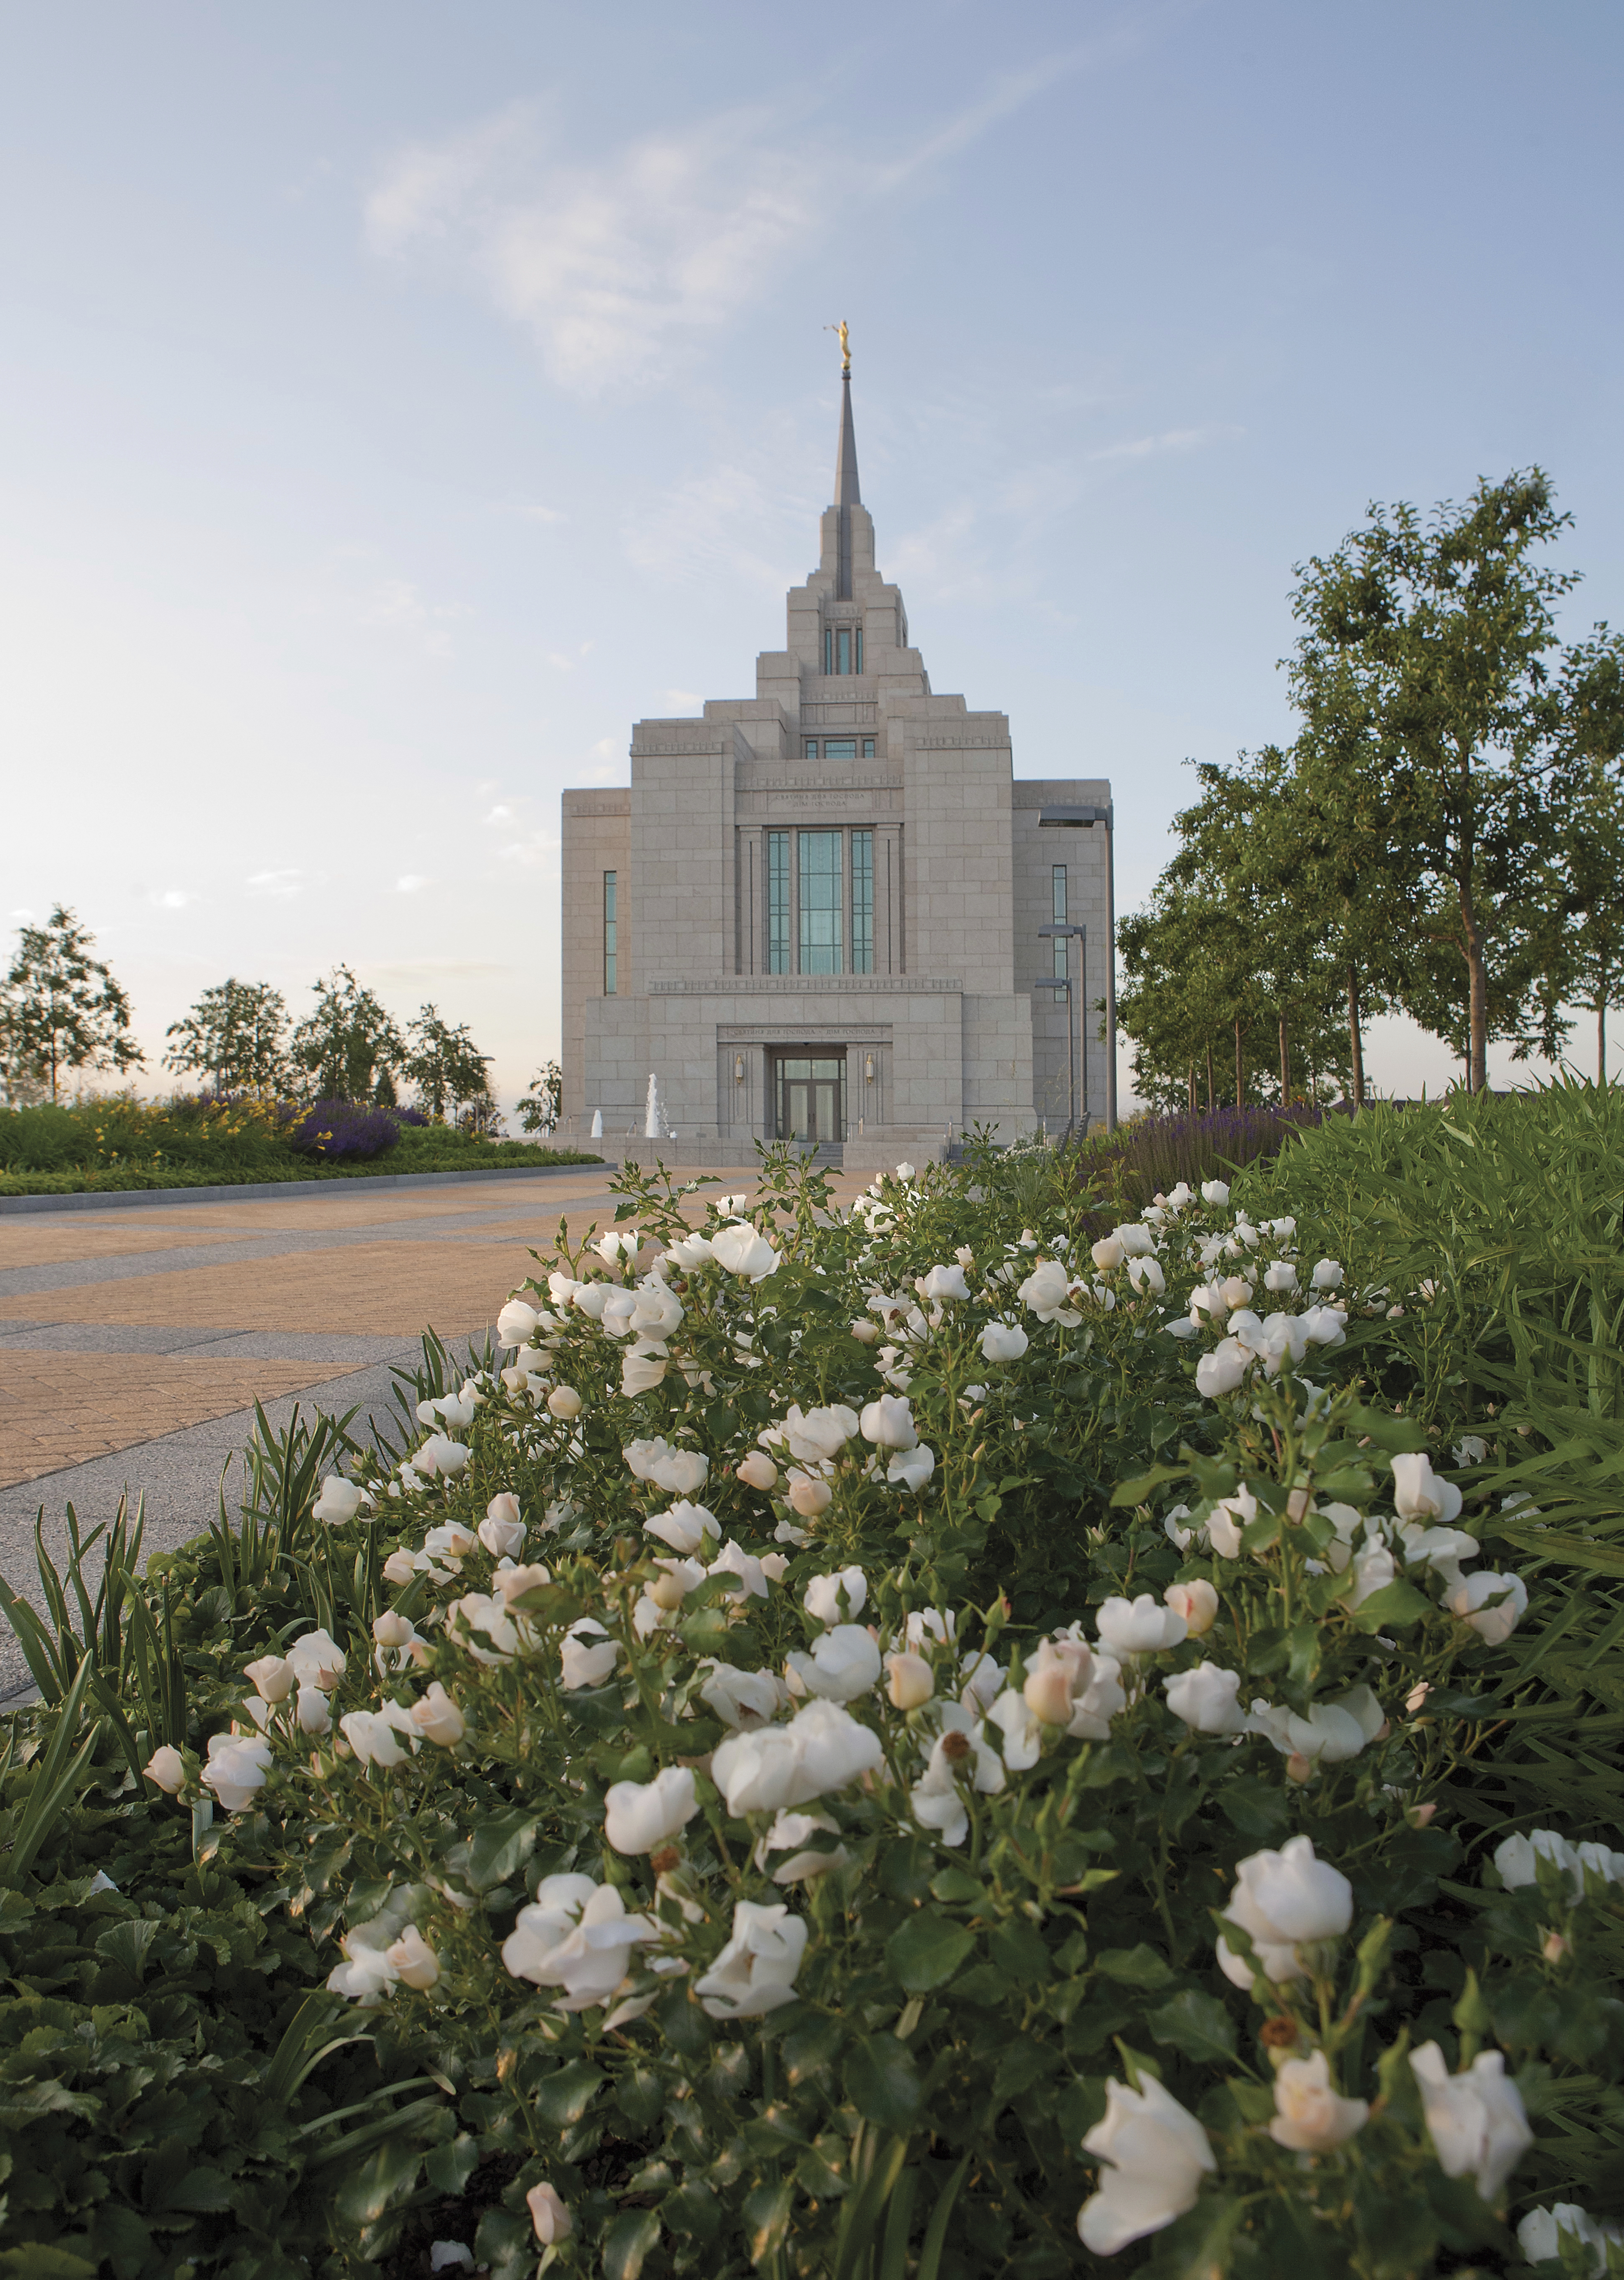 The Kyiv Ukraine Temple, including the entrance and scenery.